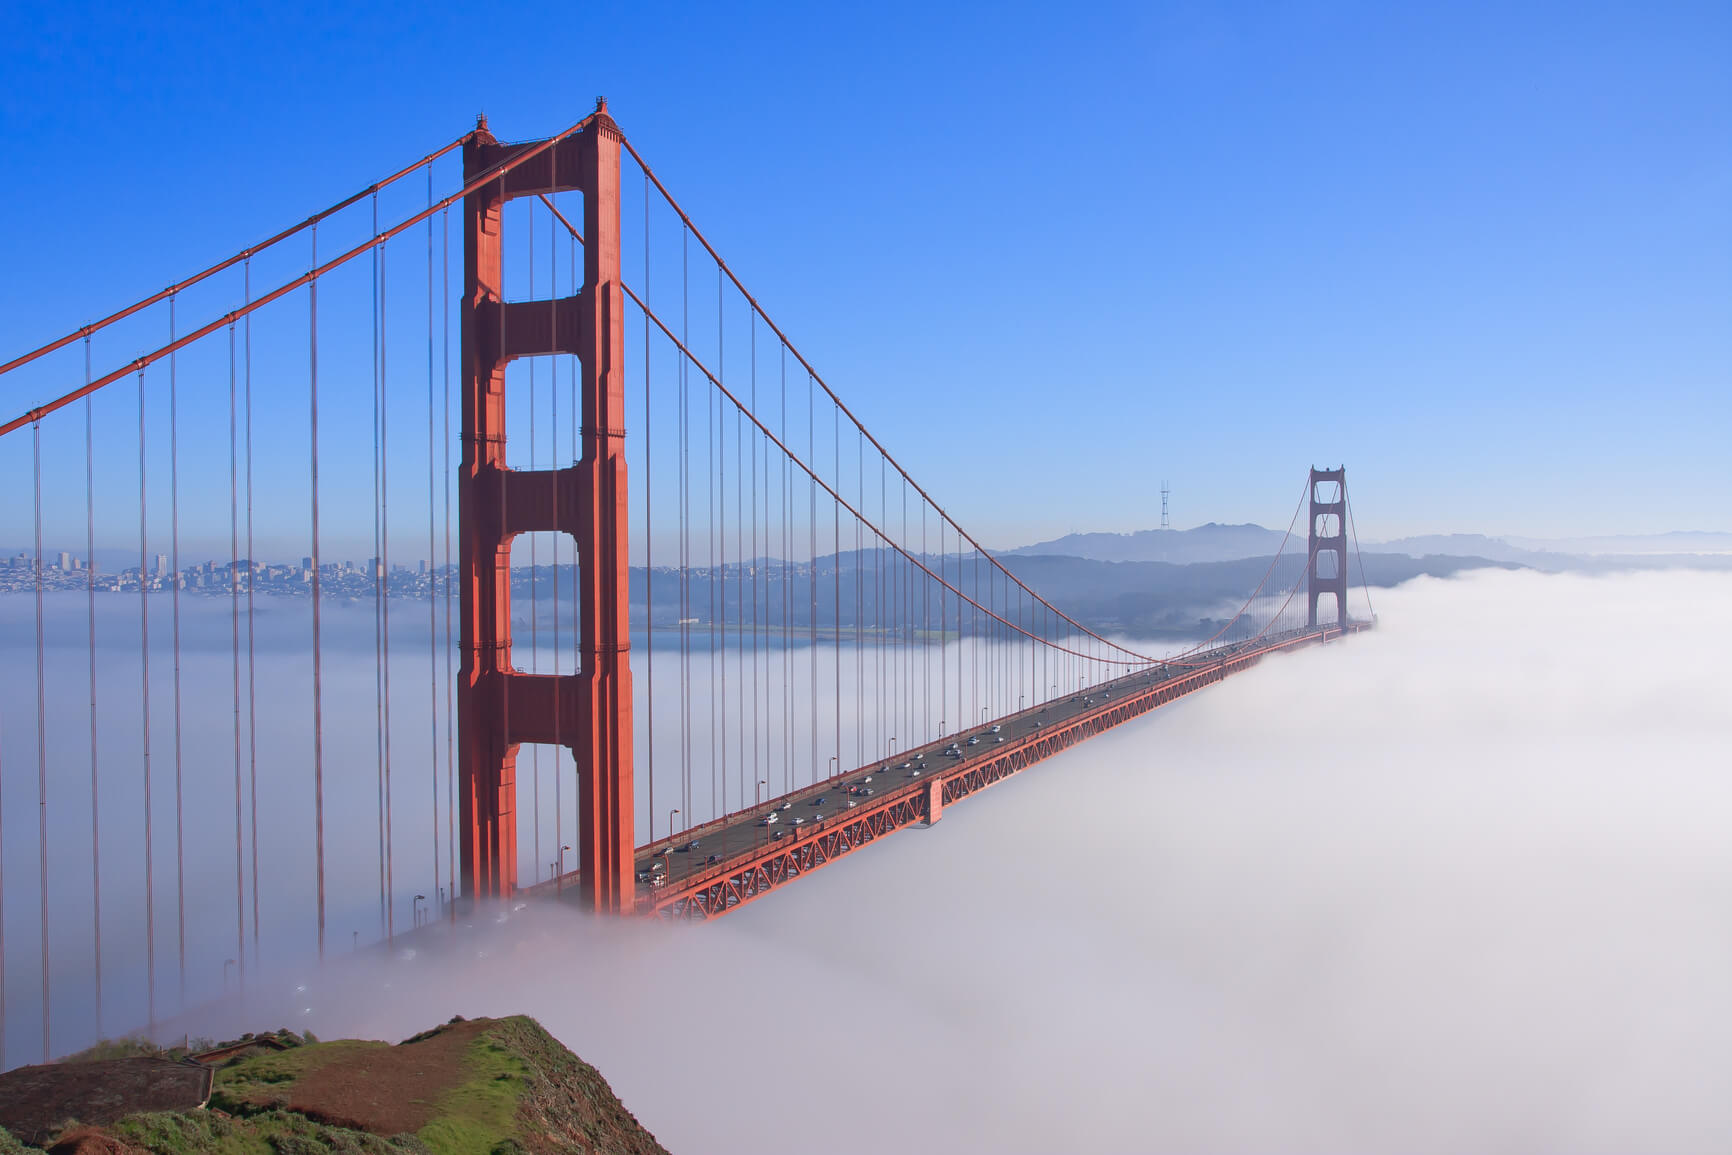 Non-stop from Paris, France to San Francisco, USA for only €283 roundtrip